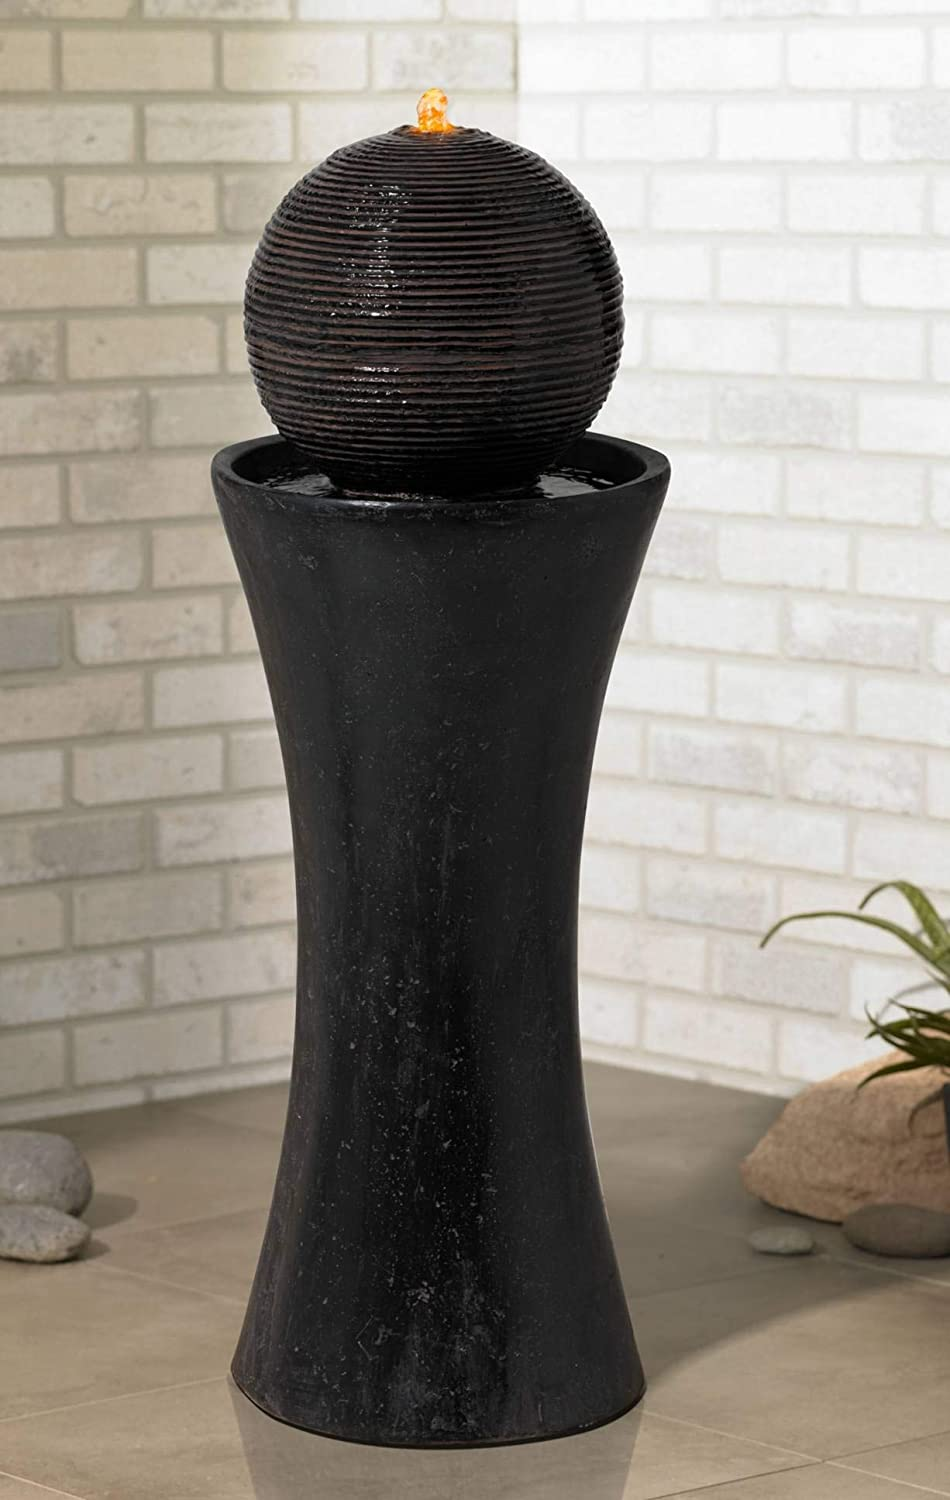 "John Timberland Dark Sphere Modern Zen Outdoor Floor Water Fountain with Light LED 30"" High Bubbler Pillar for Yard Garden Patio Deck Home"